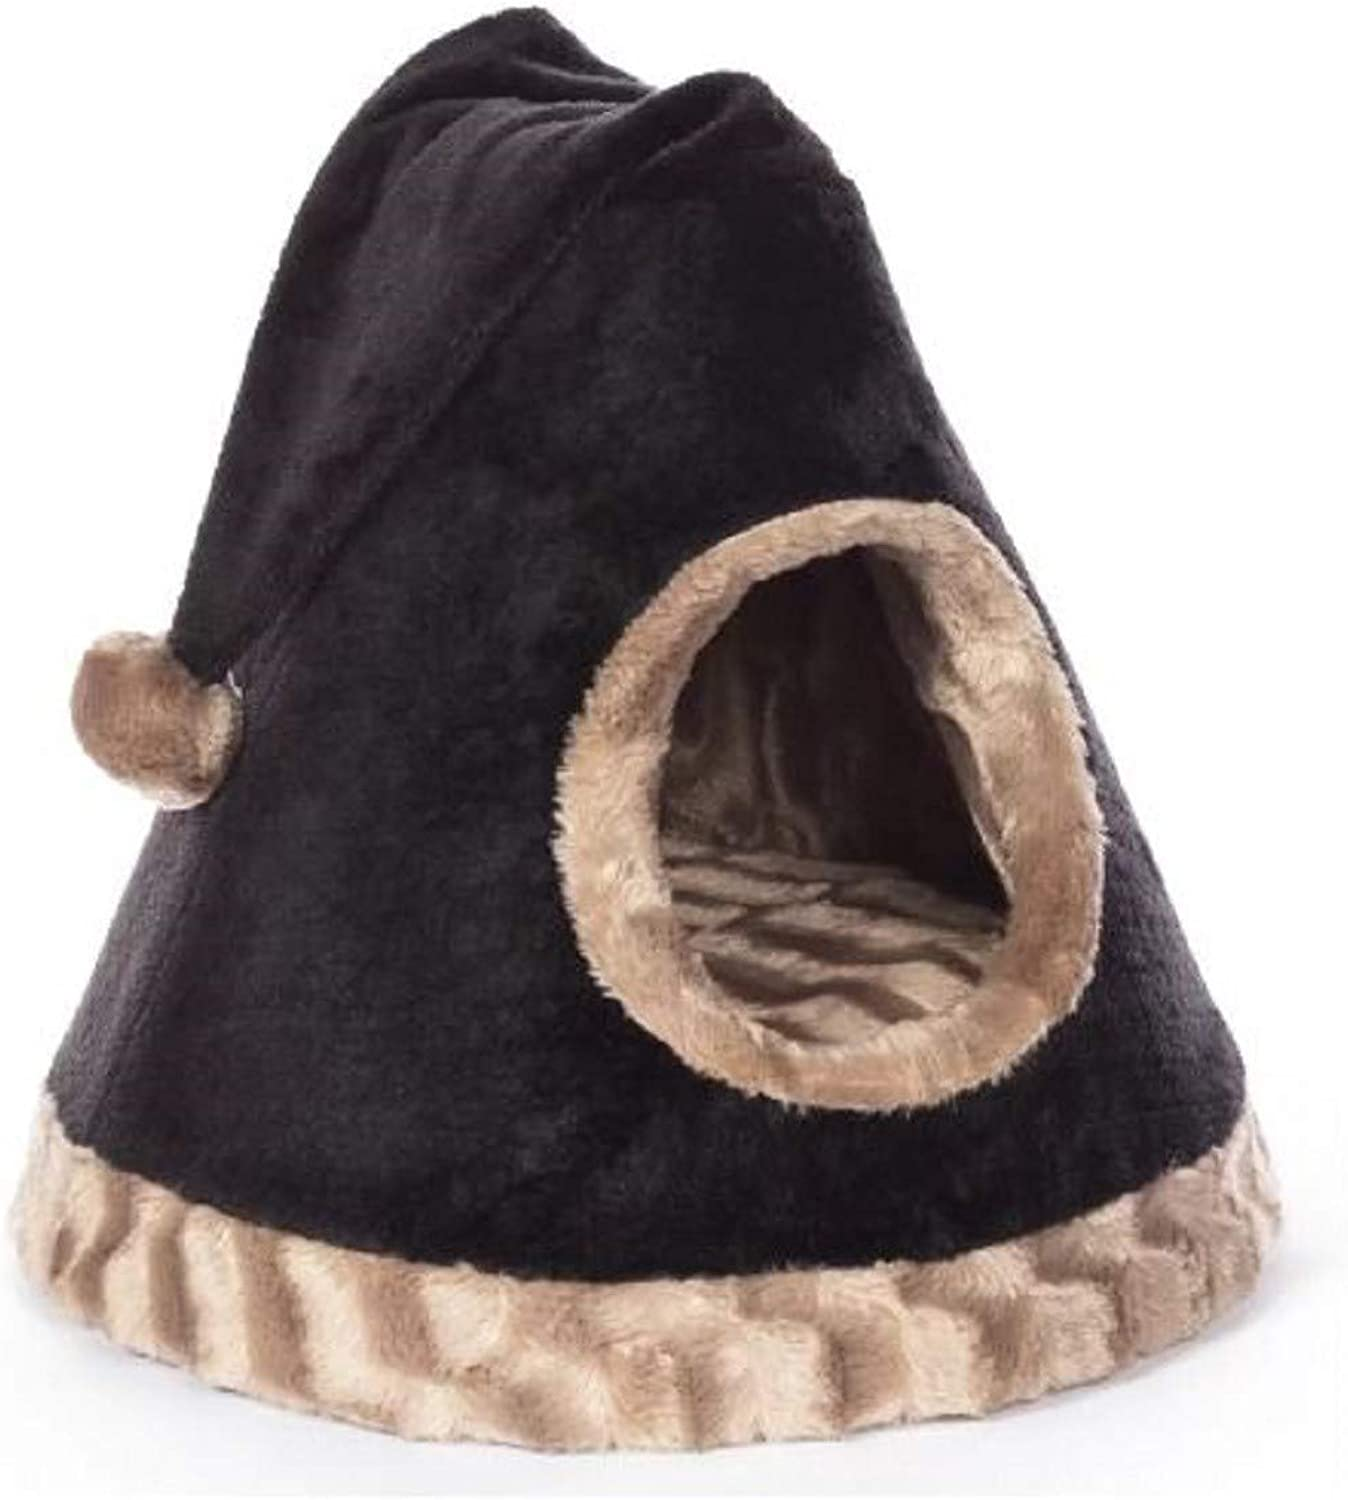 Nest Pet Bed. Hermann Kitty Cozy Cap in Black Beige Nest Pet Bed Has A Toy Tassel to Allow for Play